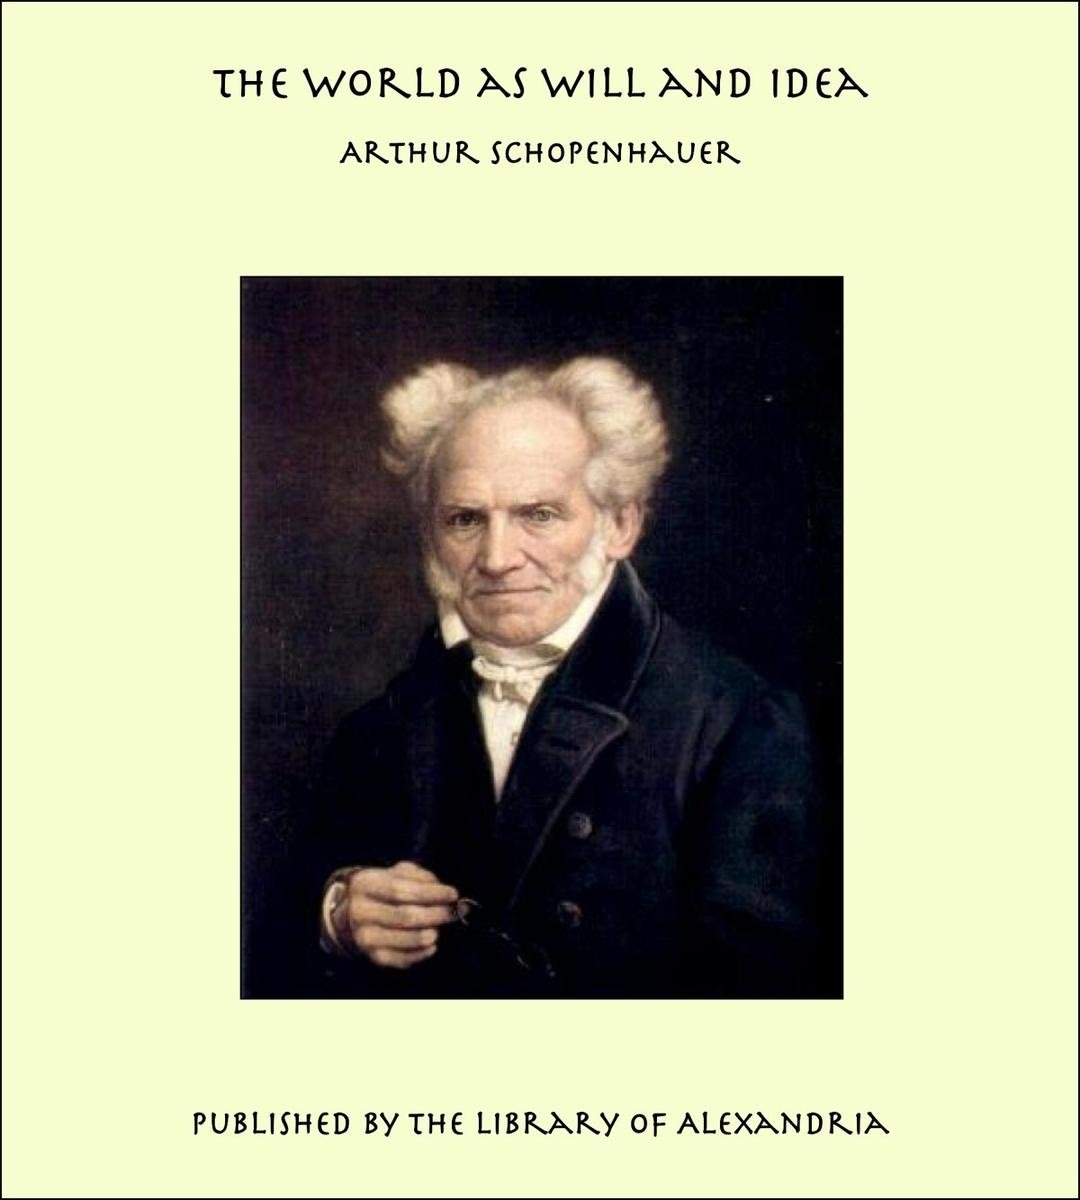 10 Elegant The World As Will And Idea the world as will and idea ebookarthur schopenhauer 2020